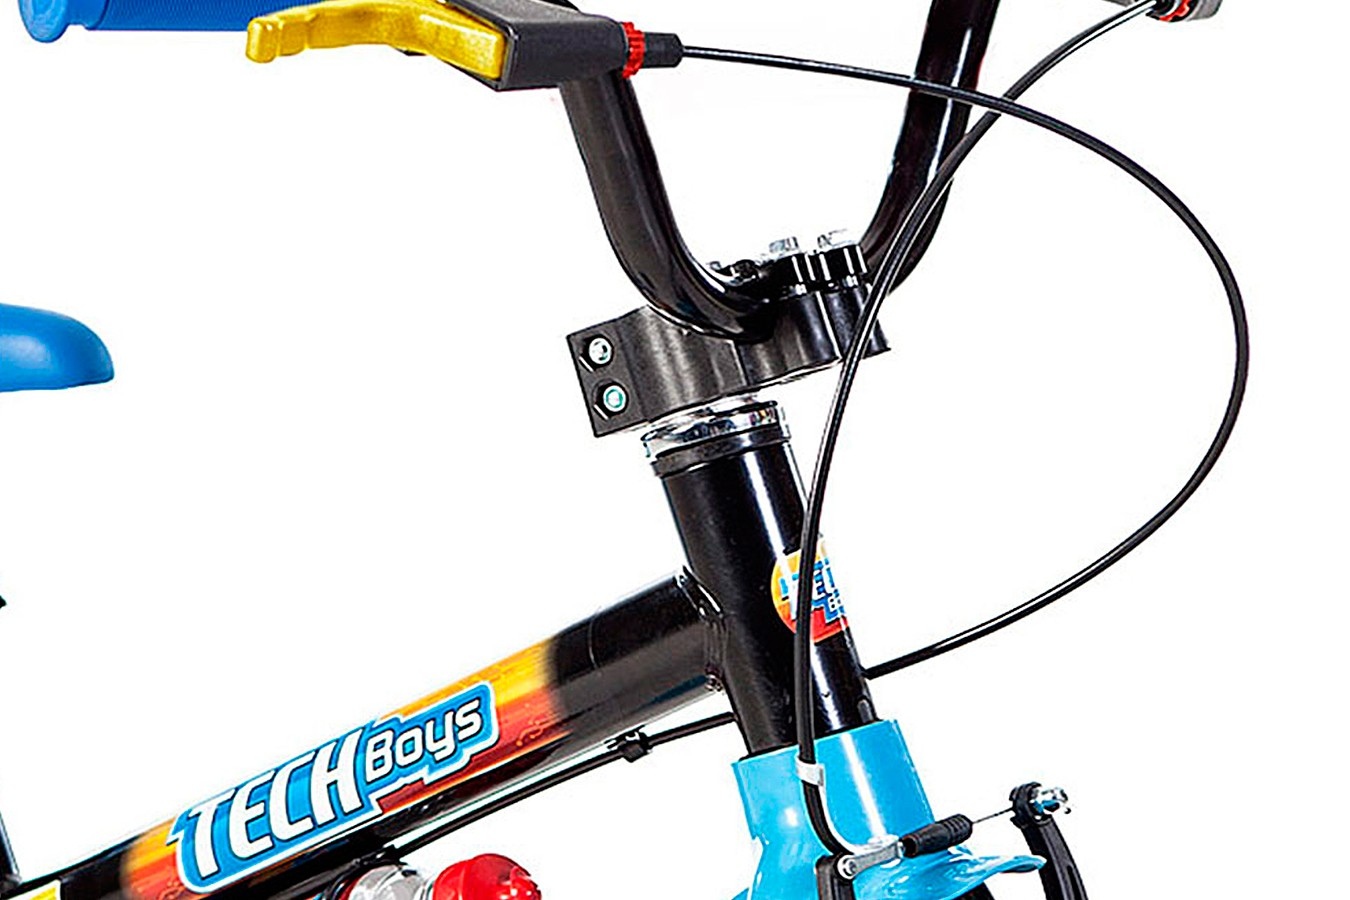 Bicicleta 16 Masculina Tech Boys - Nathor